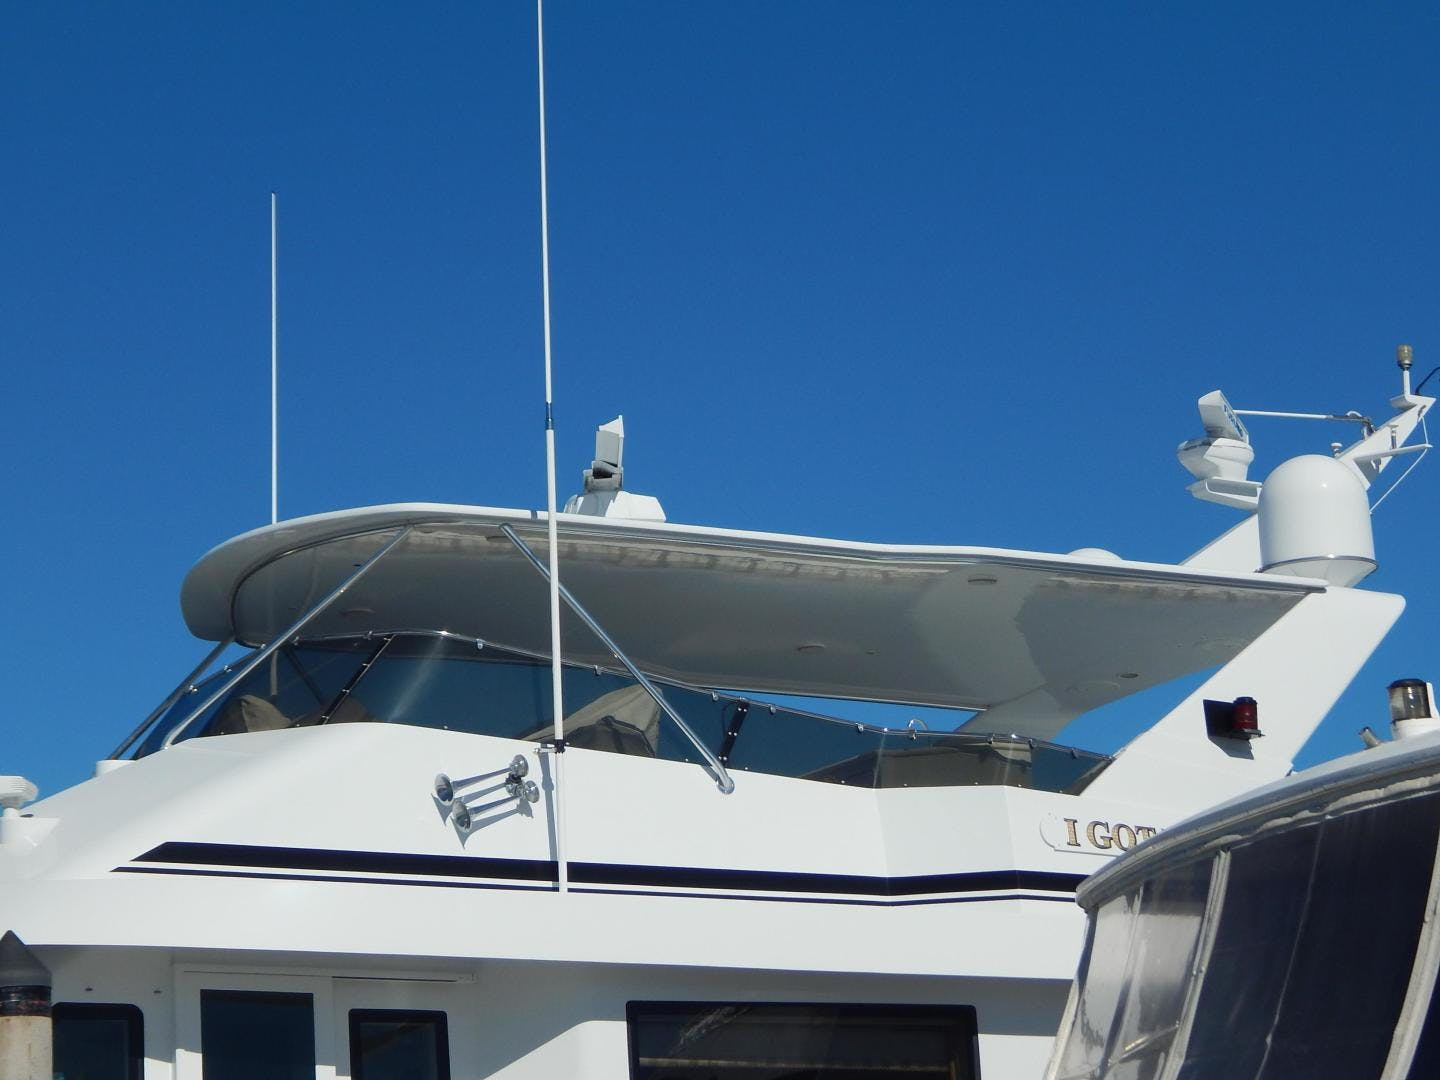 1998 Hatteras 74' Sport Deck Motor Yacht I GOT YOU | Picture 4 of 40